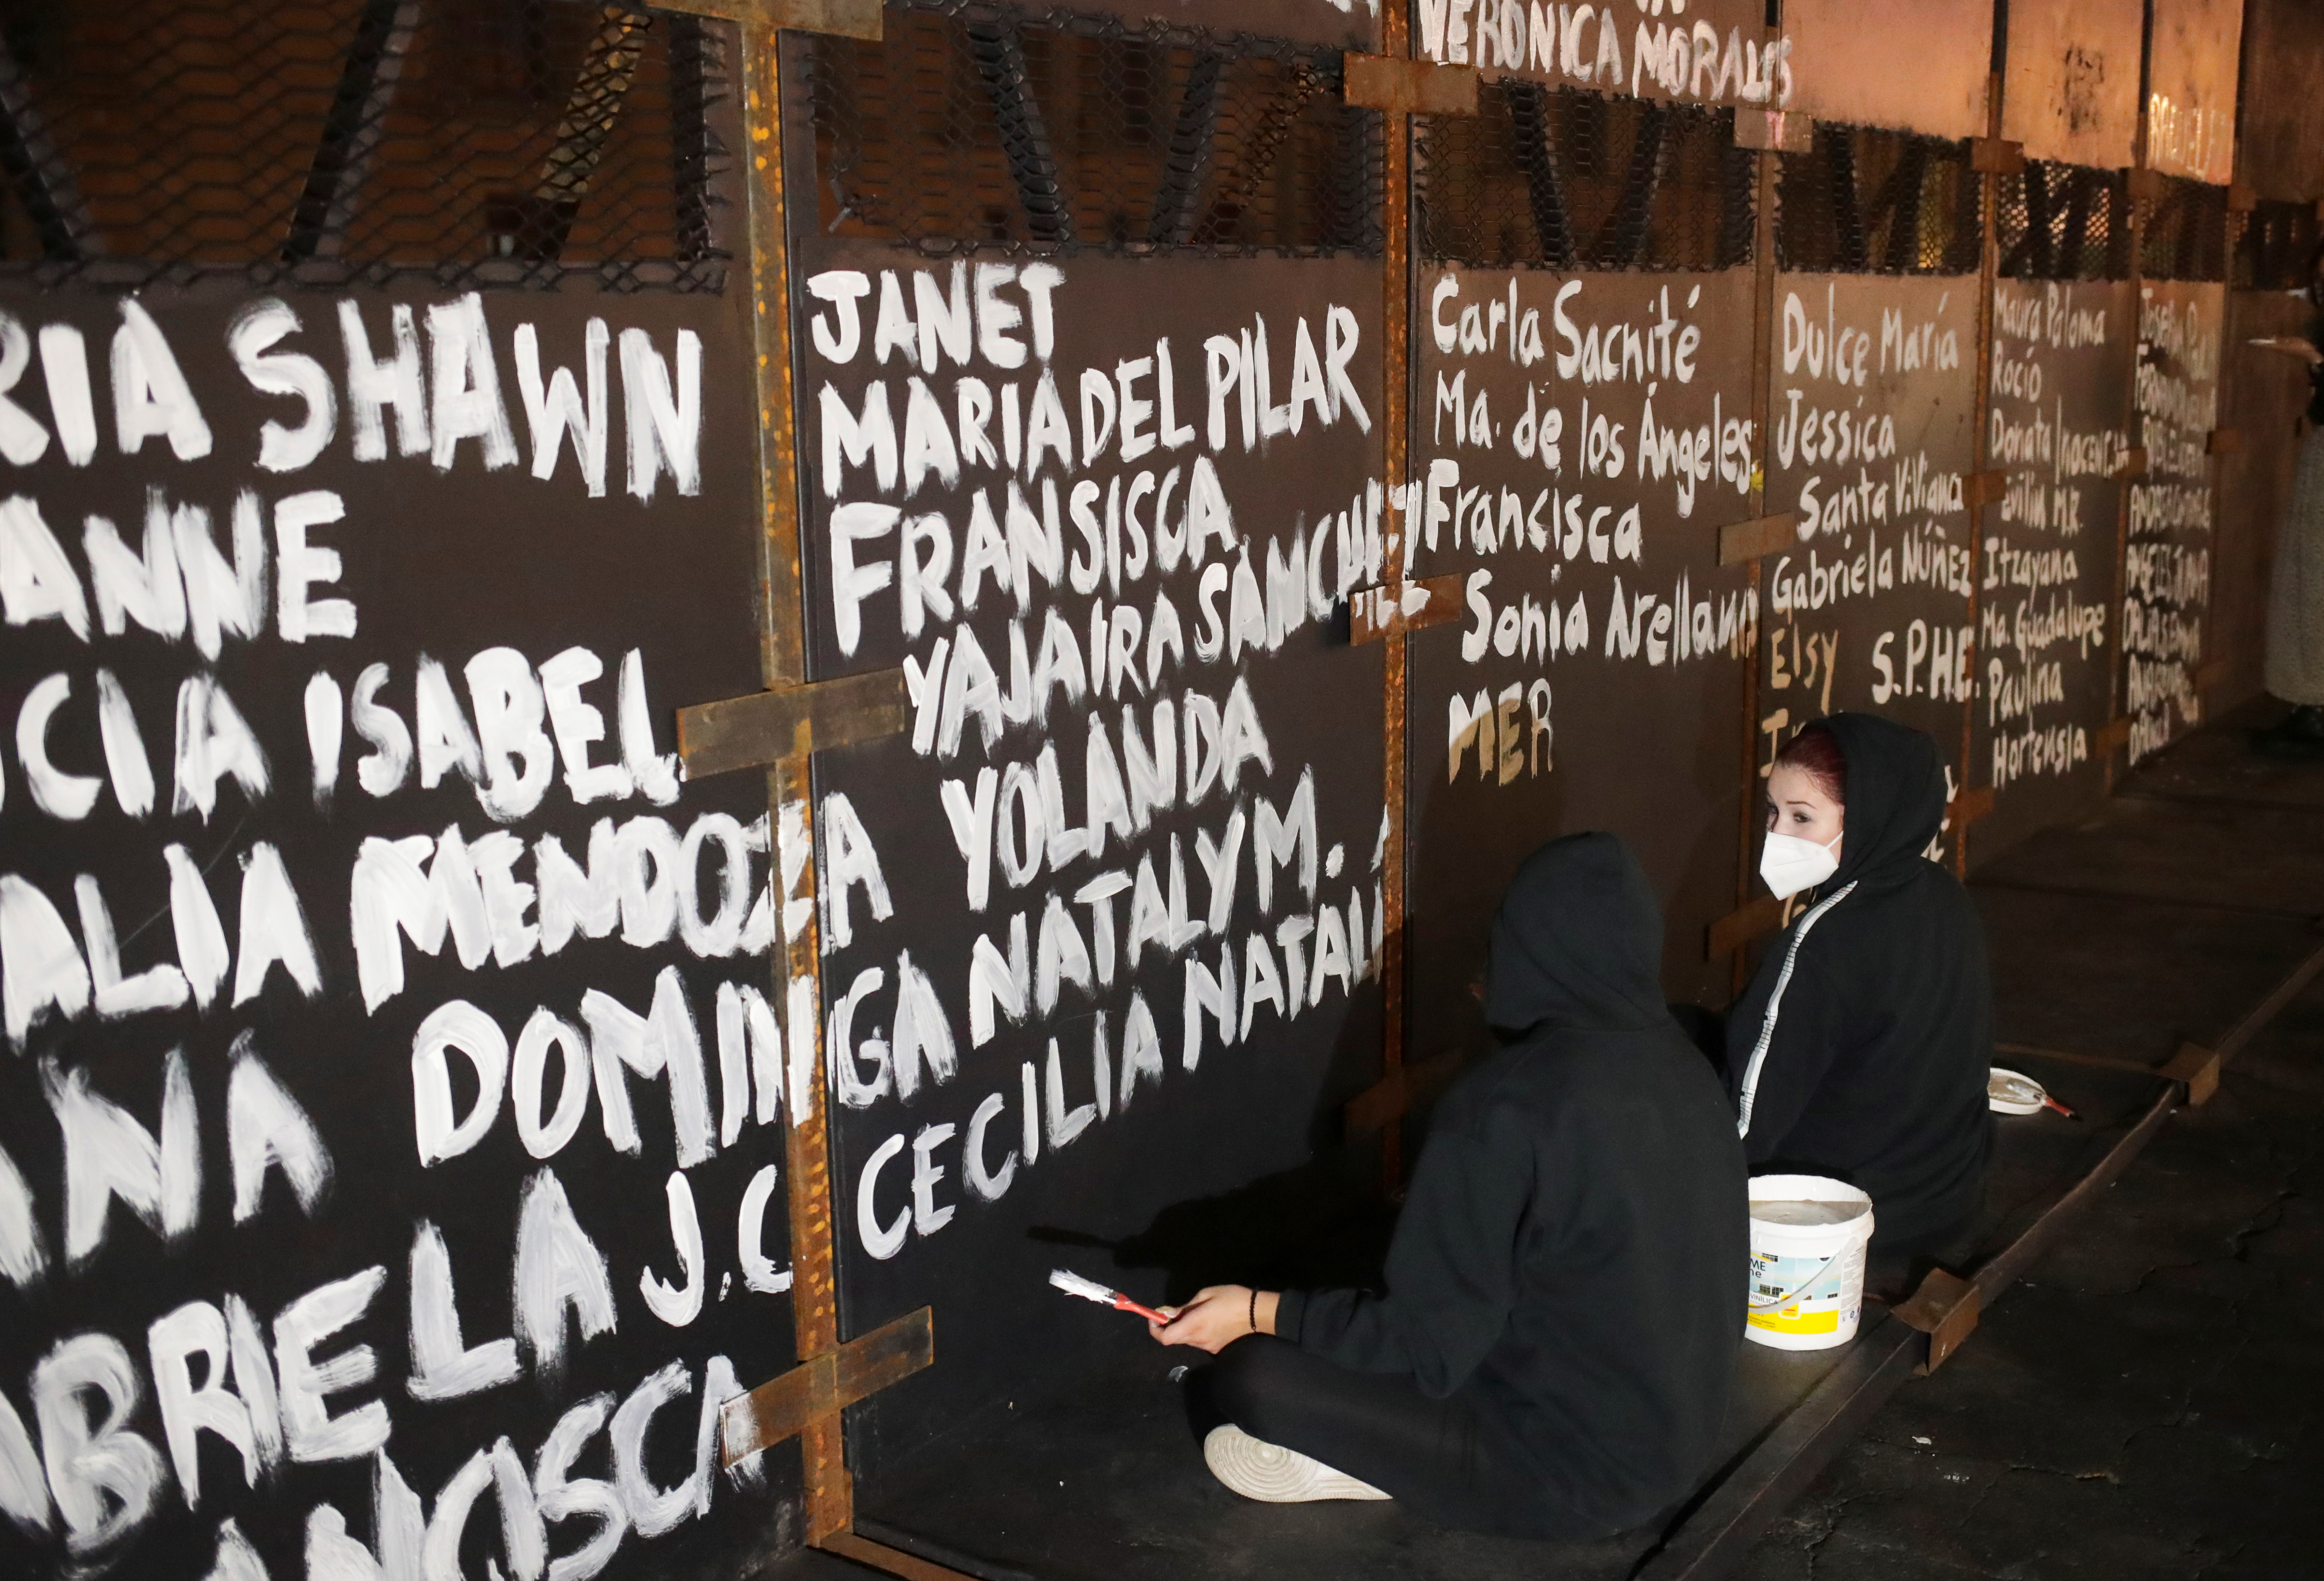 Women paint the names of victims of femicide in Mexico on fences placed outside the National Palace ahead of a Women